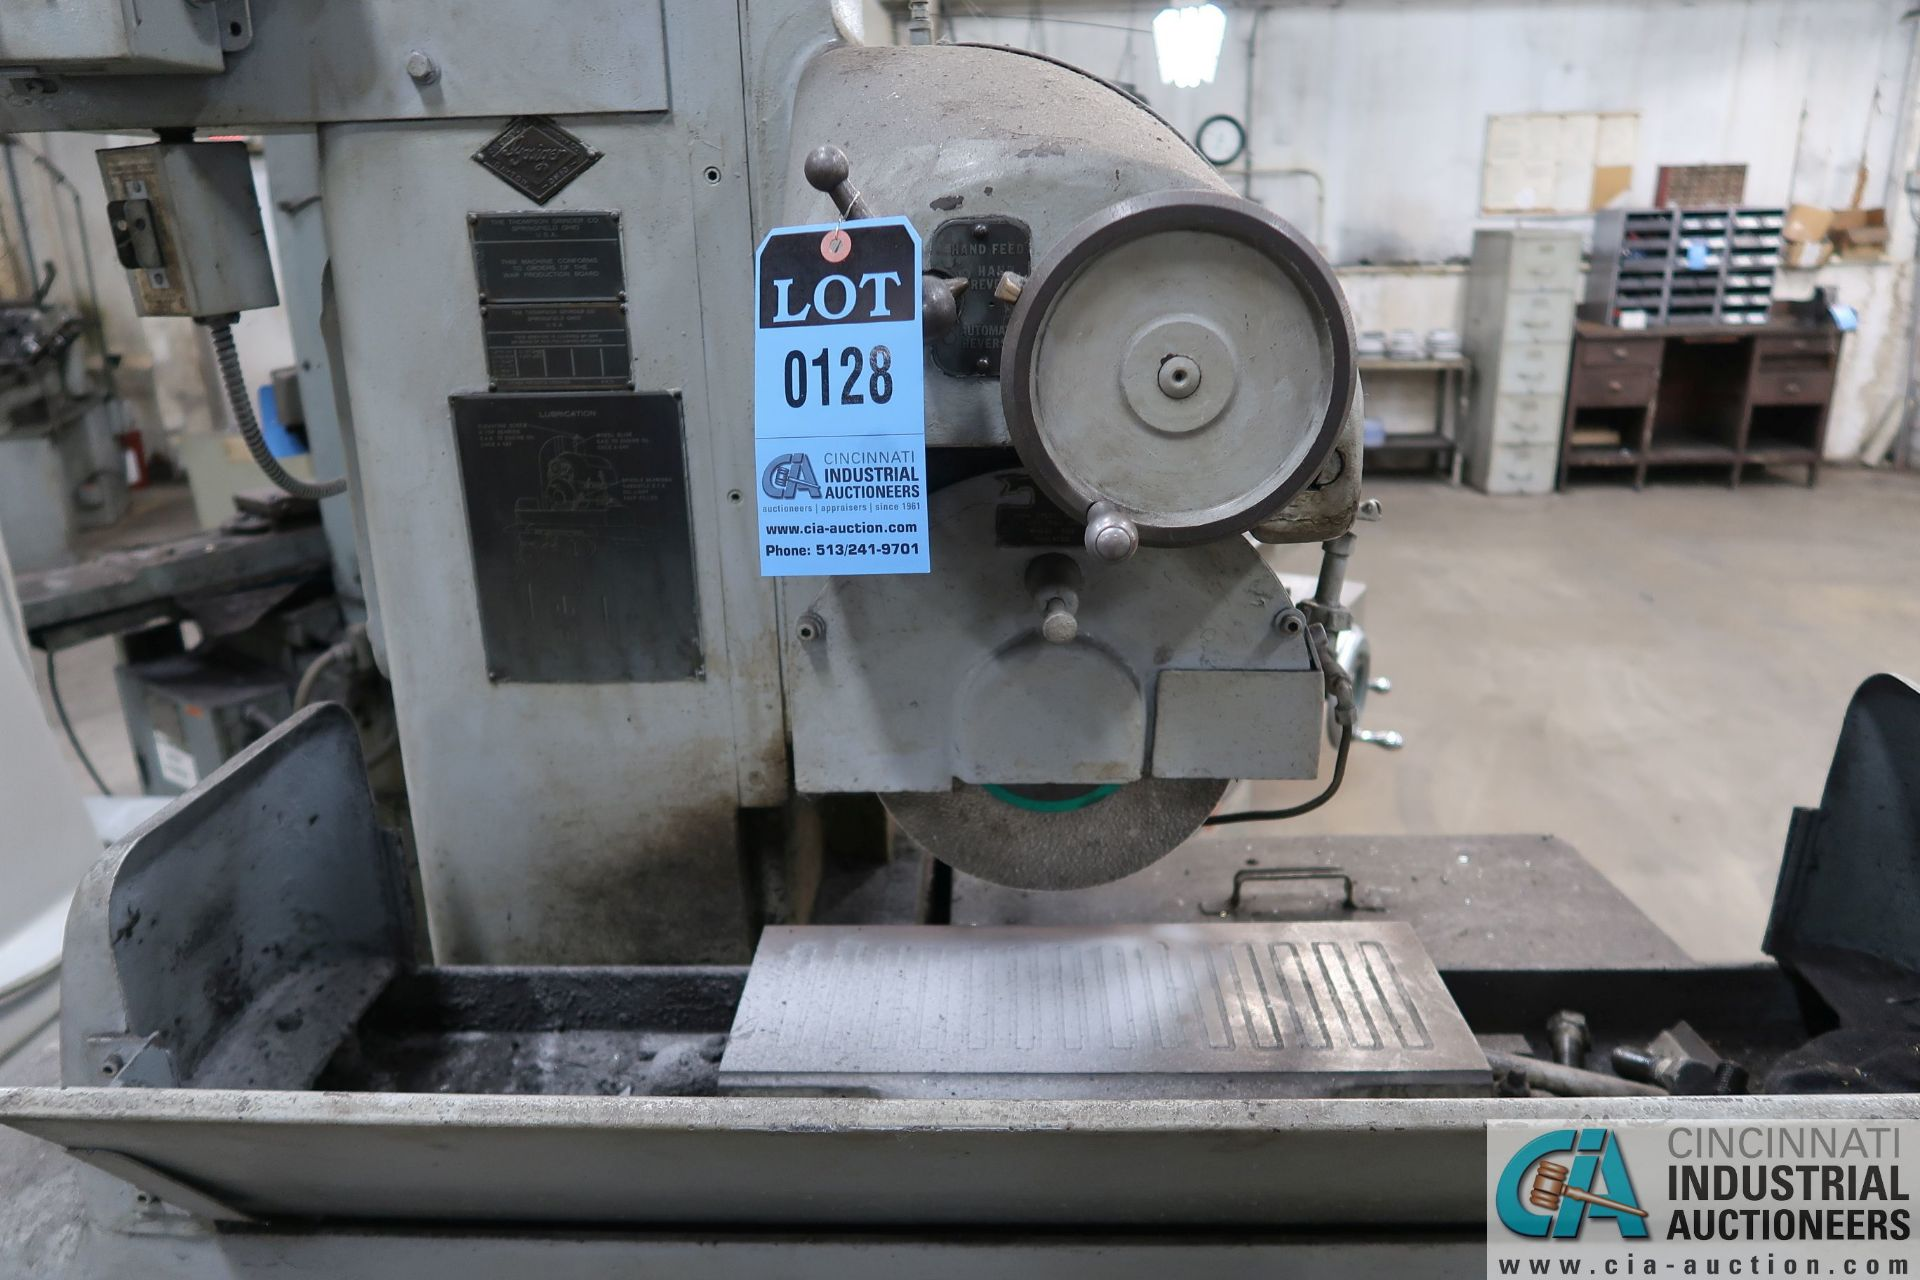 """6"""" X 18"""" THOMPSON HAND FEED SURFACE GRINDER; S/N F46258, 220 VOLTS, 3-PHASE, 1-1/2 HP MOTOR - Image 4 of 10"""